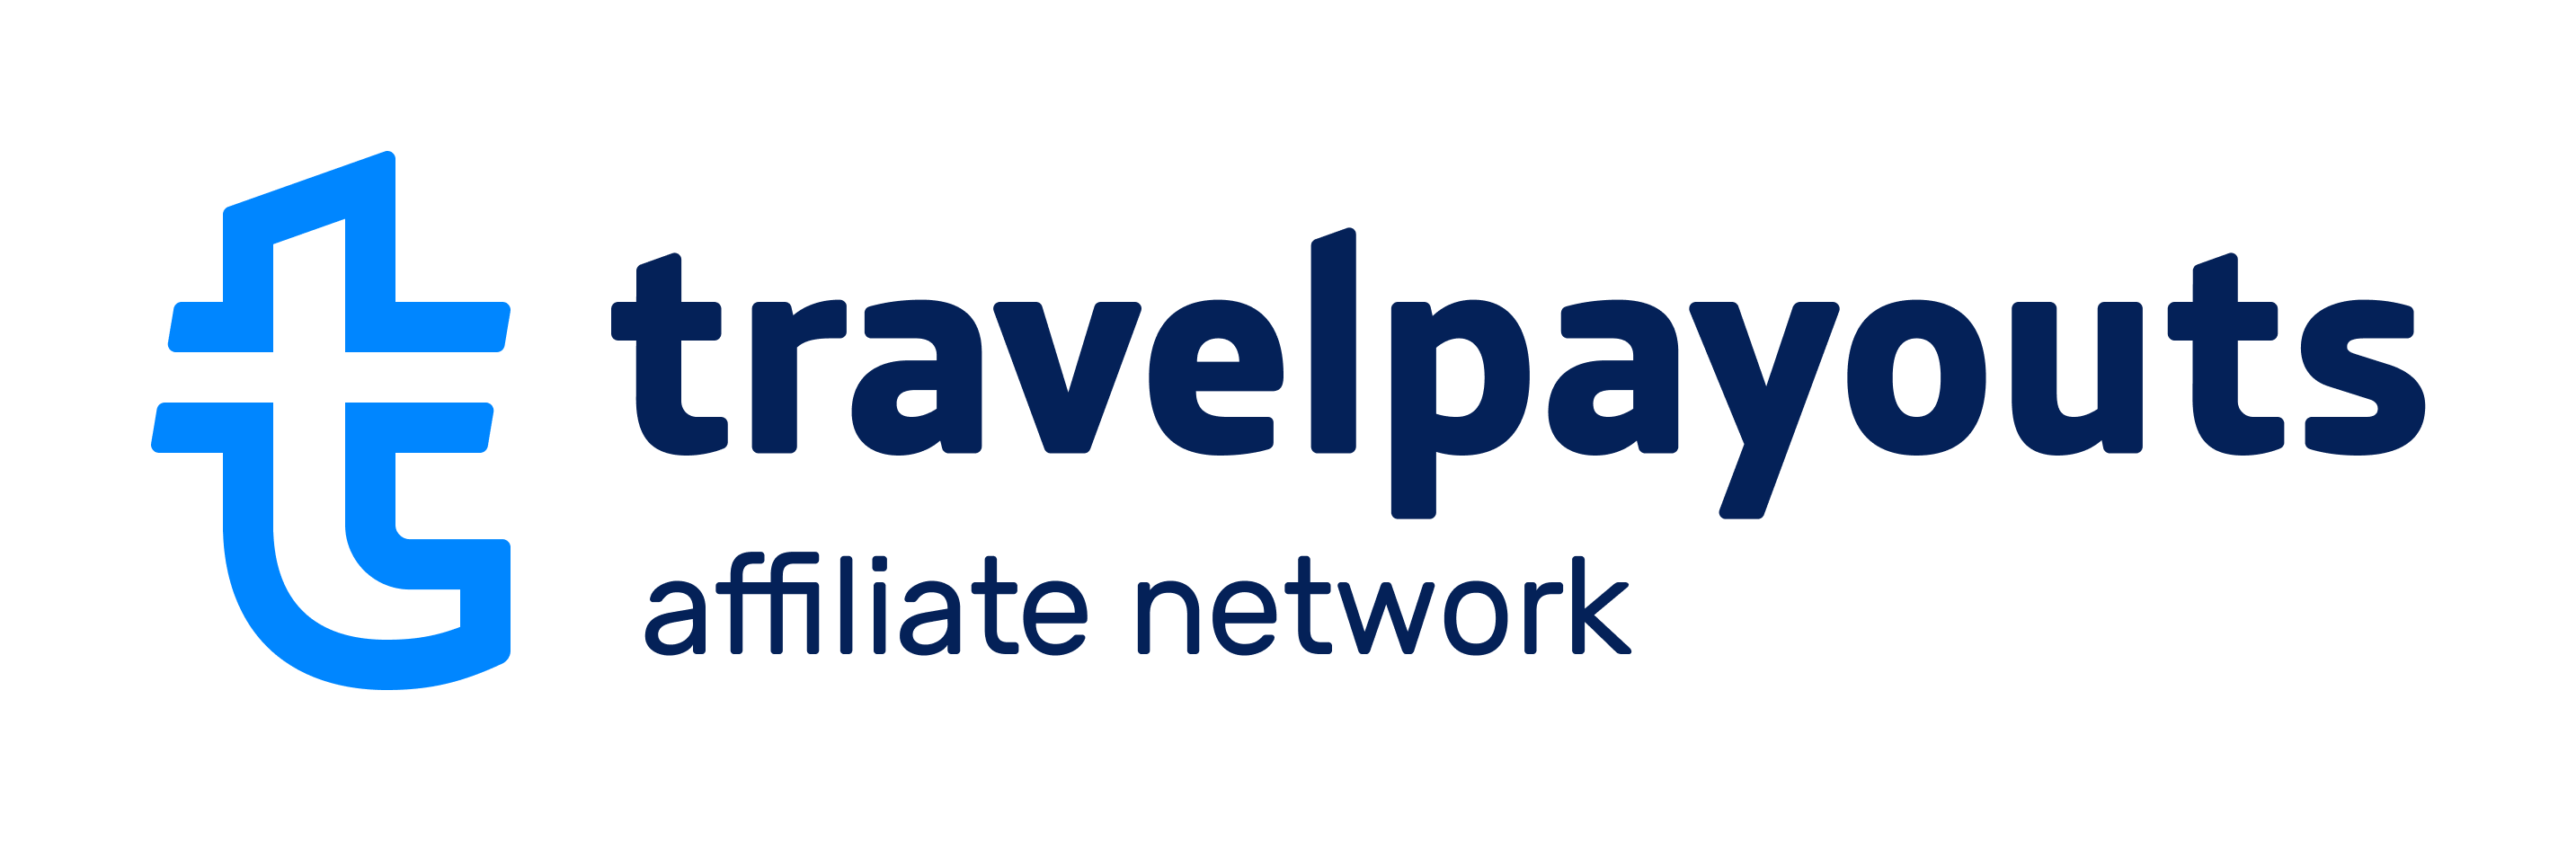 Travel Payouts logo image